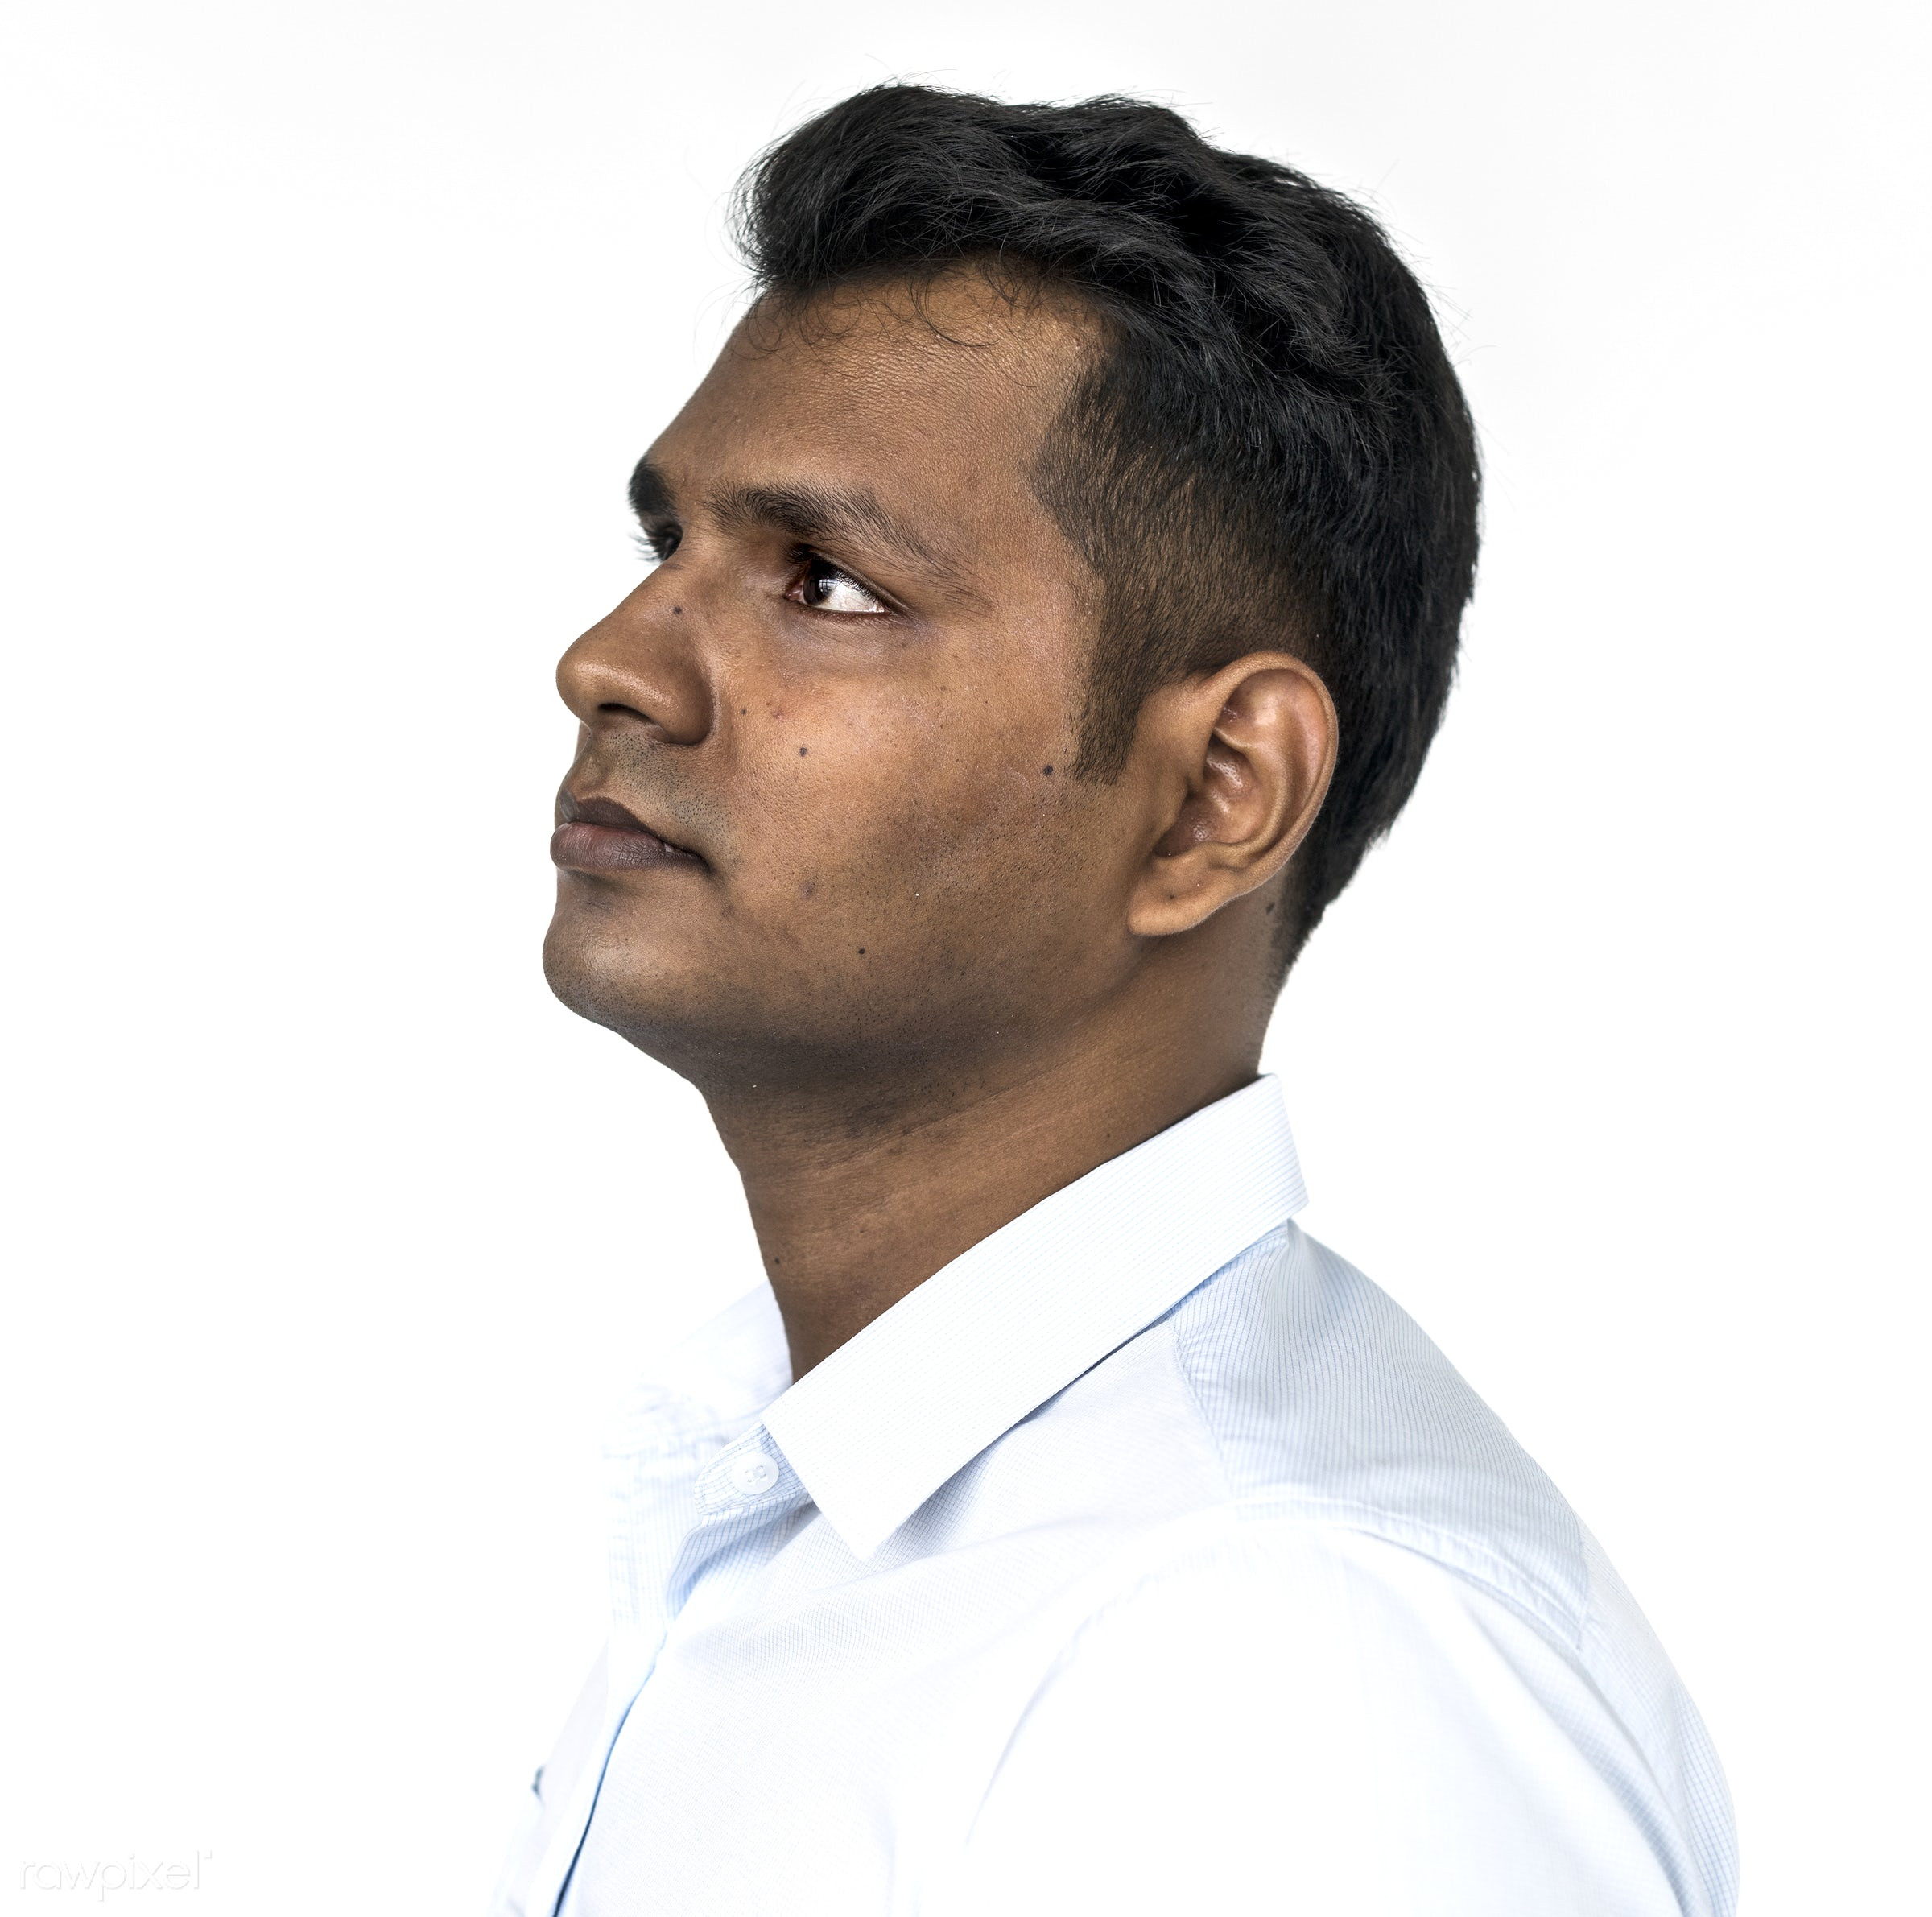 studio, asian, face expression, serene face, look up, solo, side, closeup, man, headshot, gesture, indian, portrait, emotion...